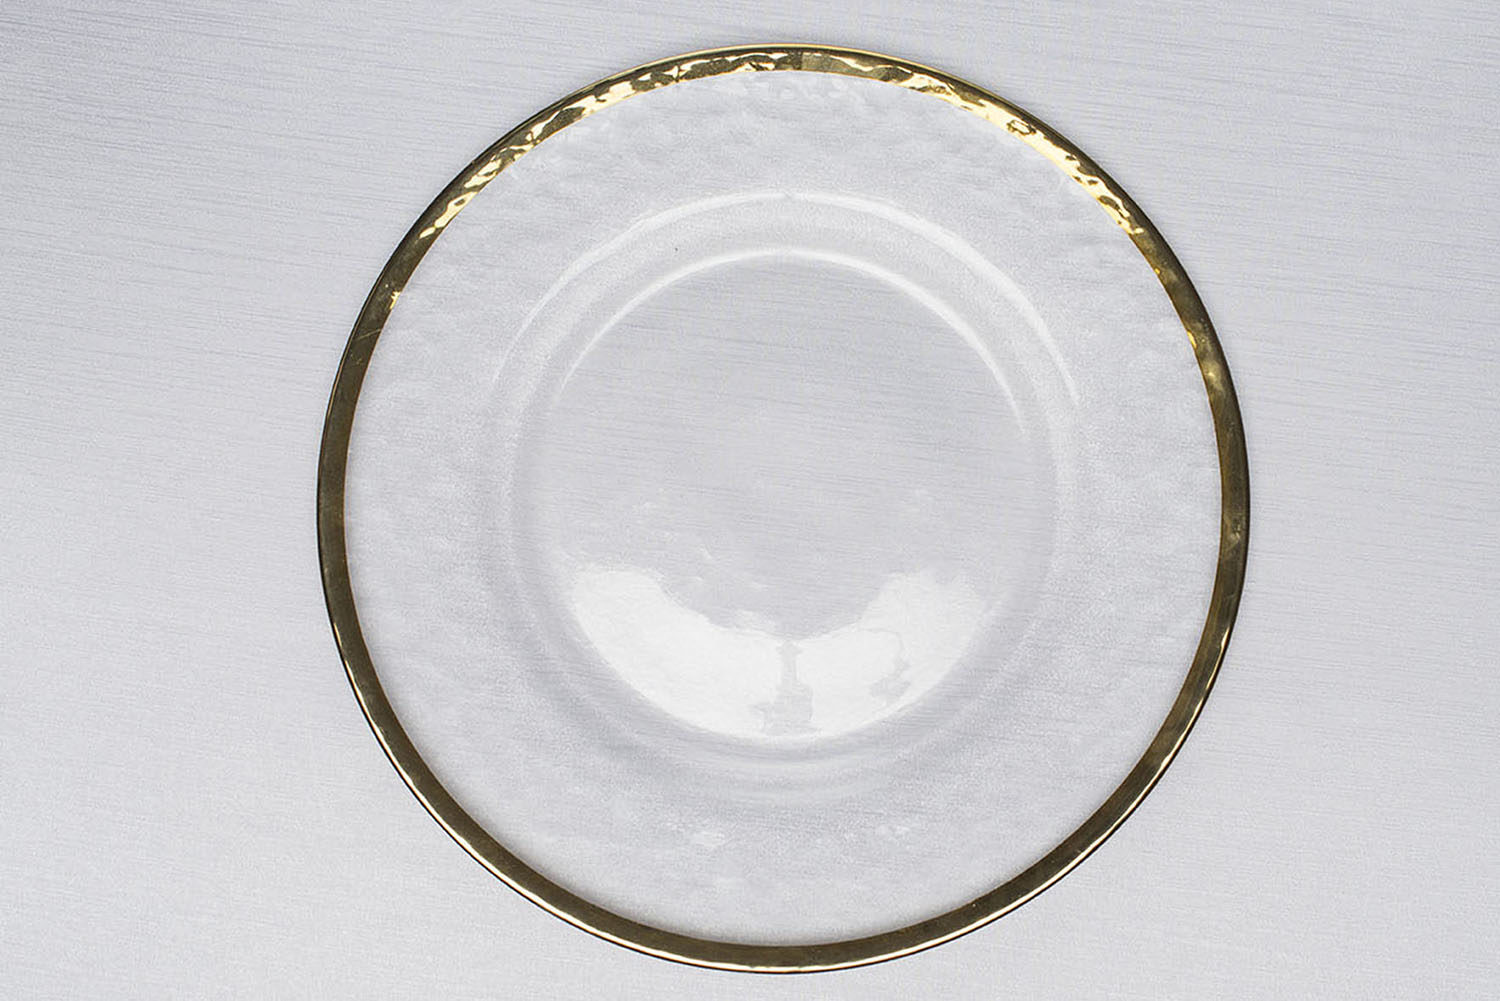 Fabulous Clear Modeled Glass, Gold Rim Charger Plate | Centerpiece Table  GL91